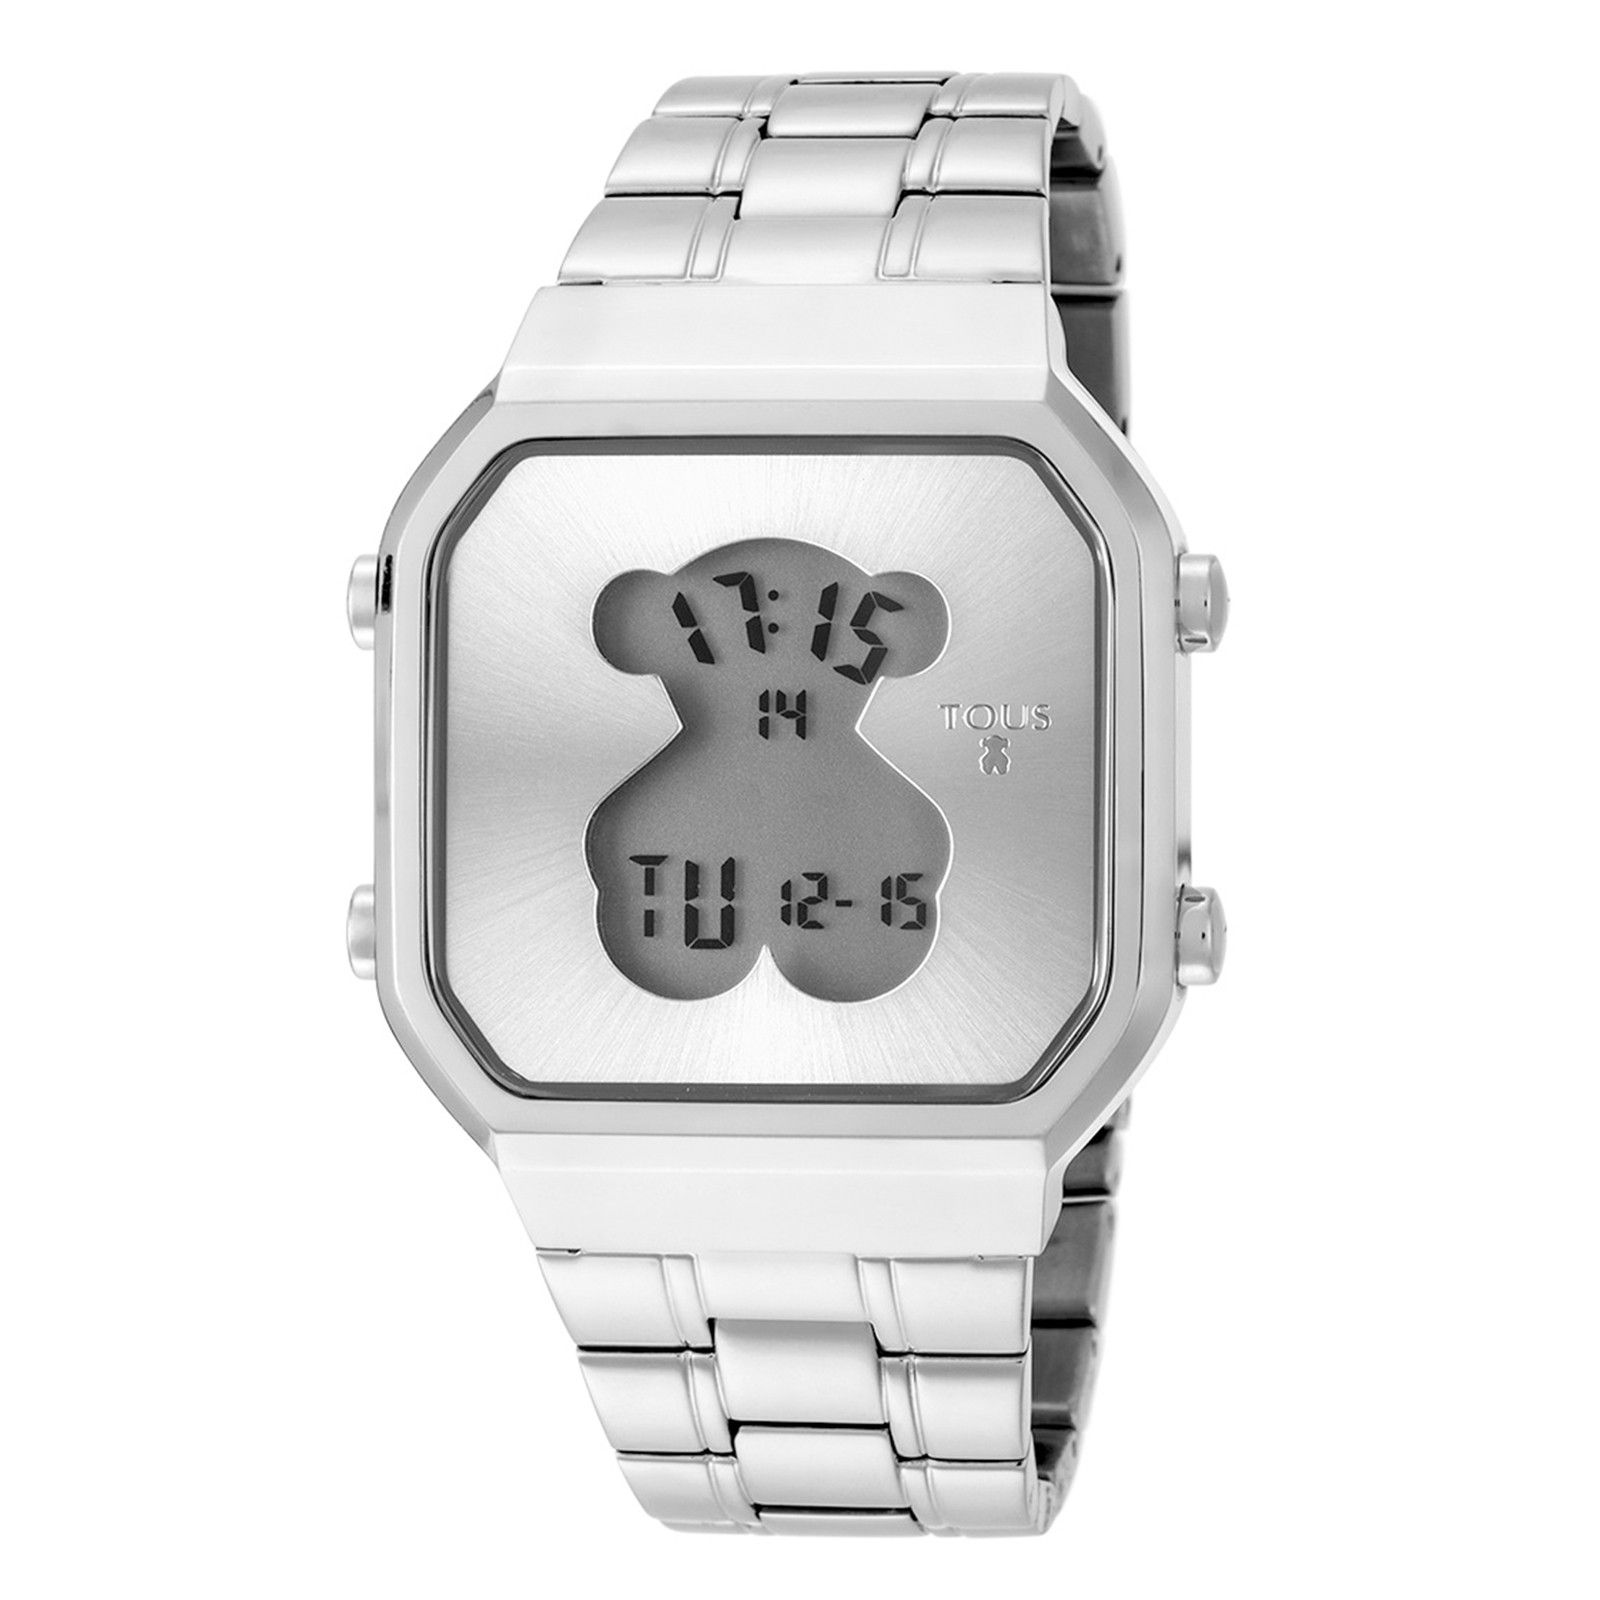 Reloj d bear sq plateado de acero tous tous for Jewelry stores in bear delaware